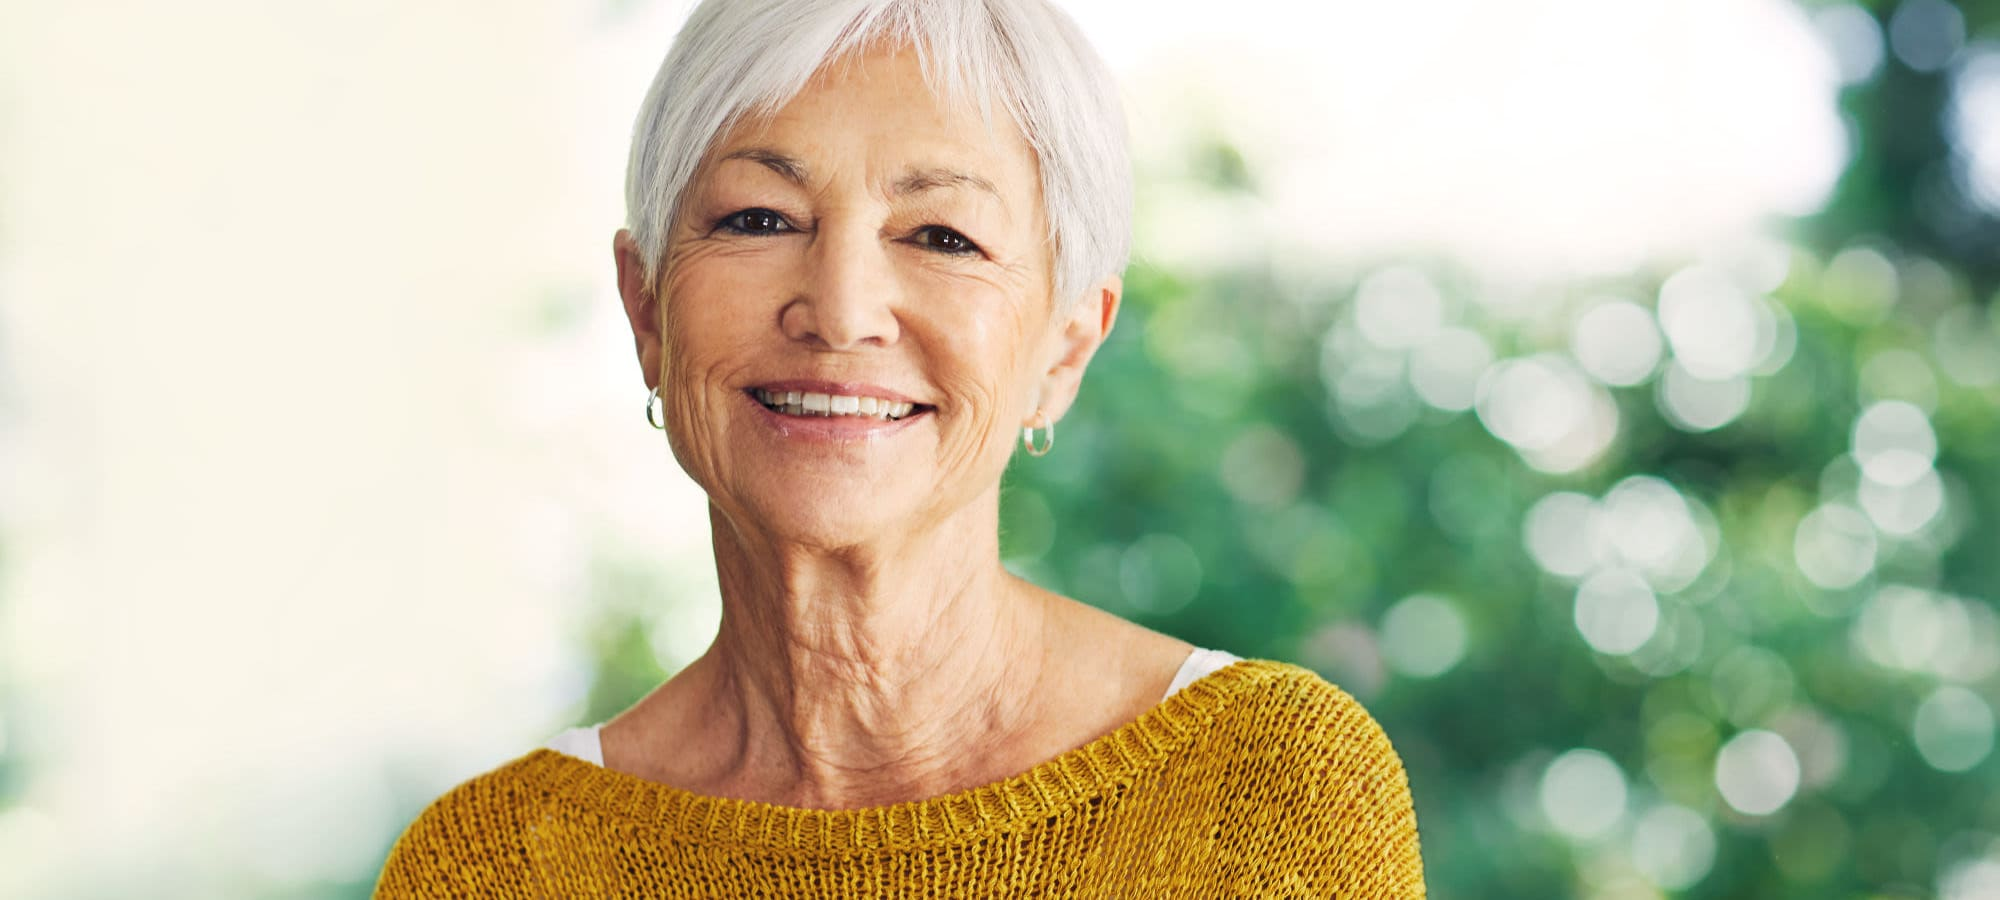 Elderly woman smiling wearing yellow short